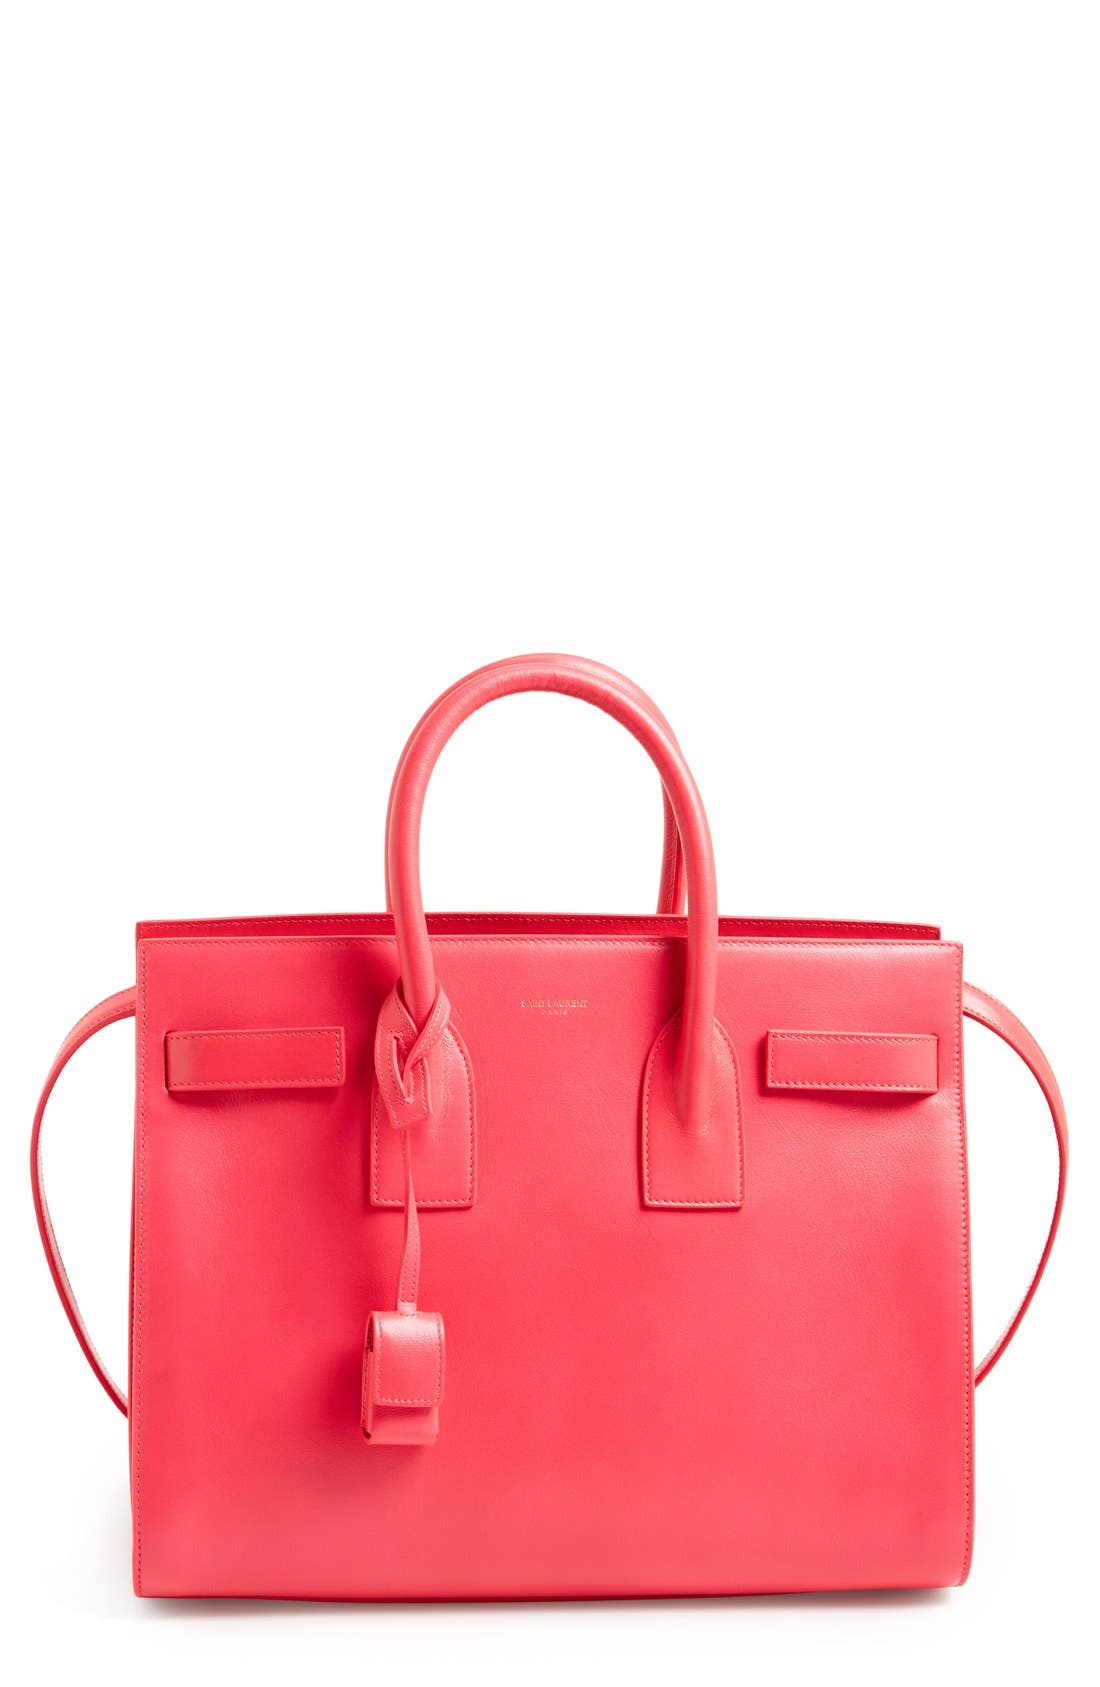 Main Image - Saint Laurent 'Small Sac de Jour' Leather Tote